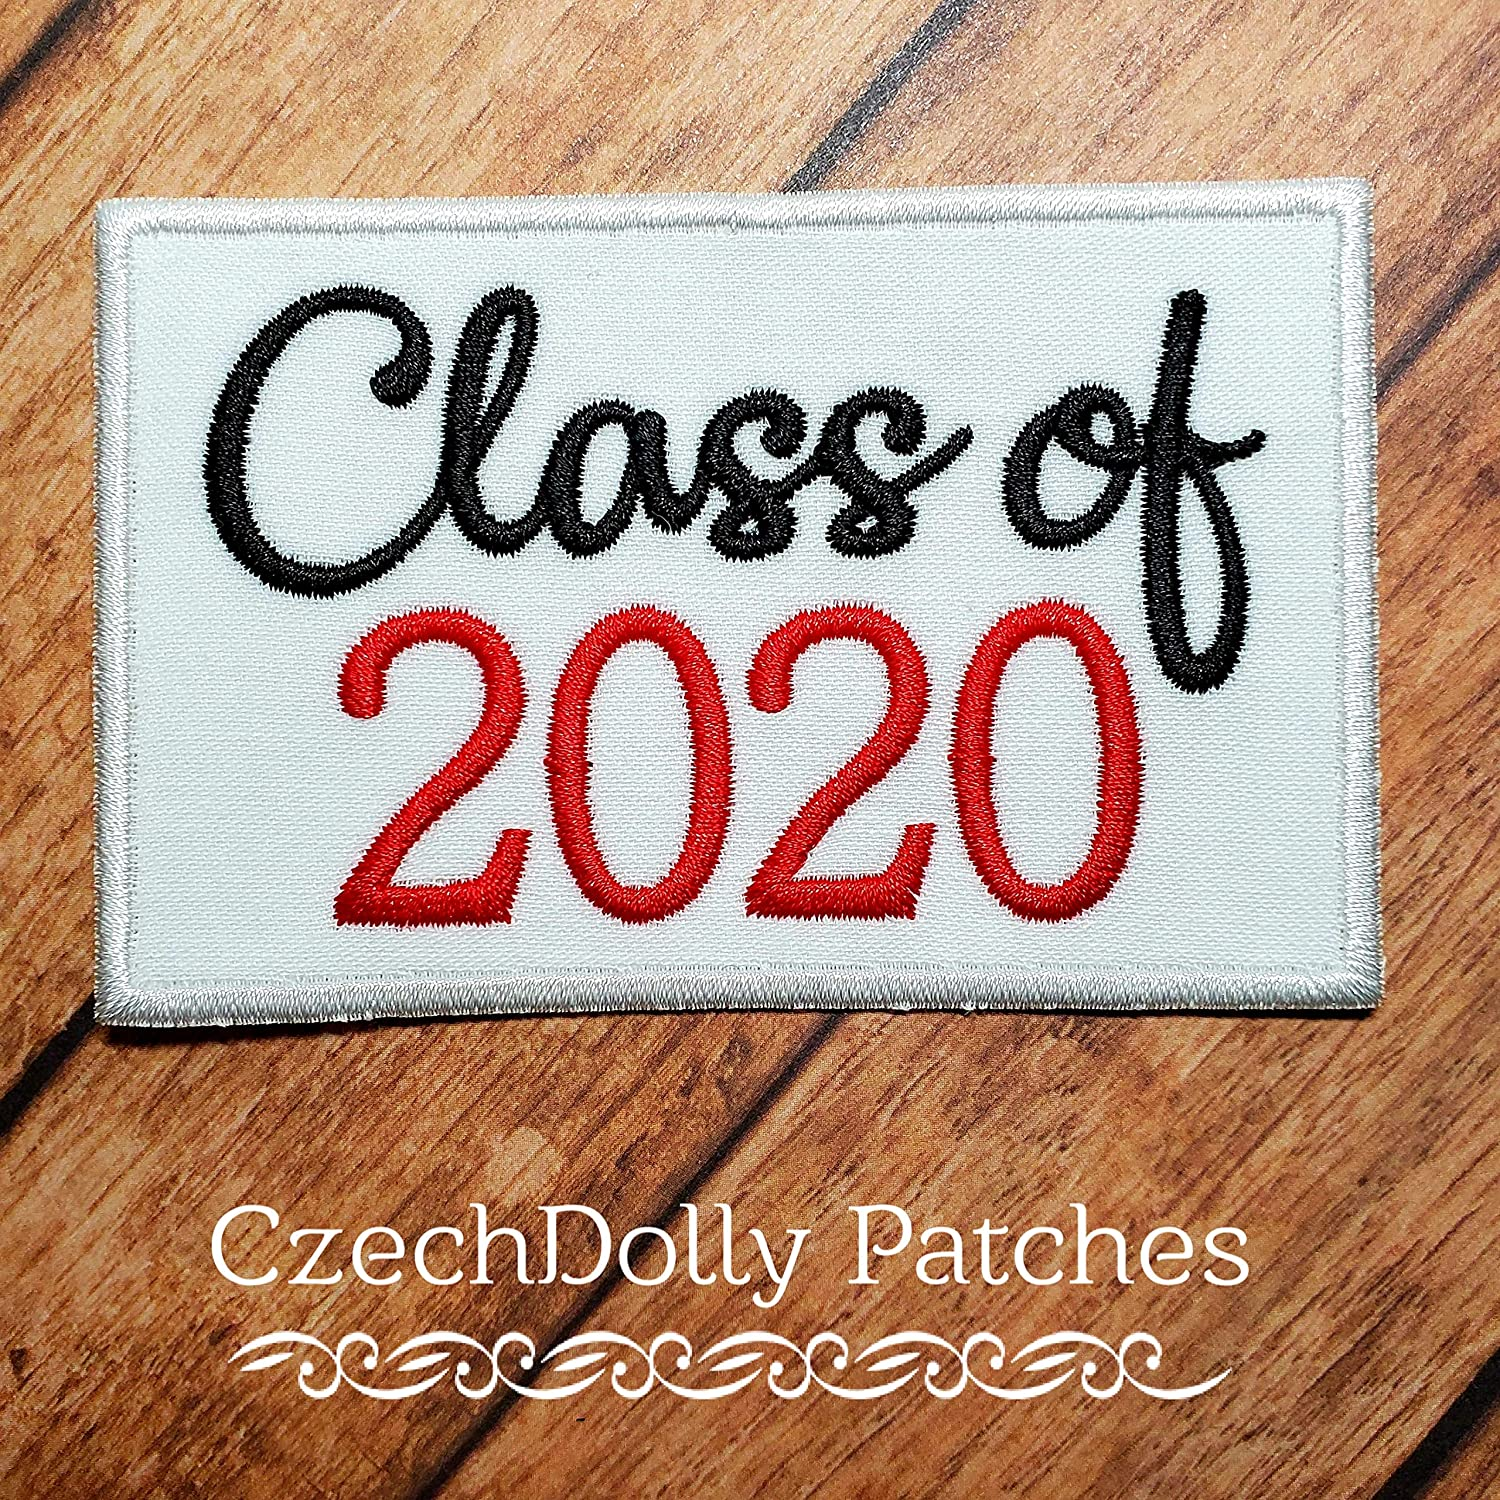 Class of 2020 Graduation Patch Iron-on or Sew-on Applique Embroidered Patch 2021 2022 2023 2024-006